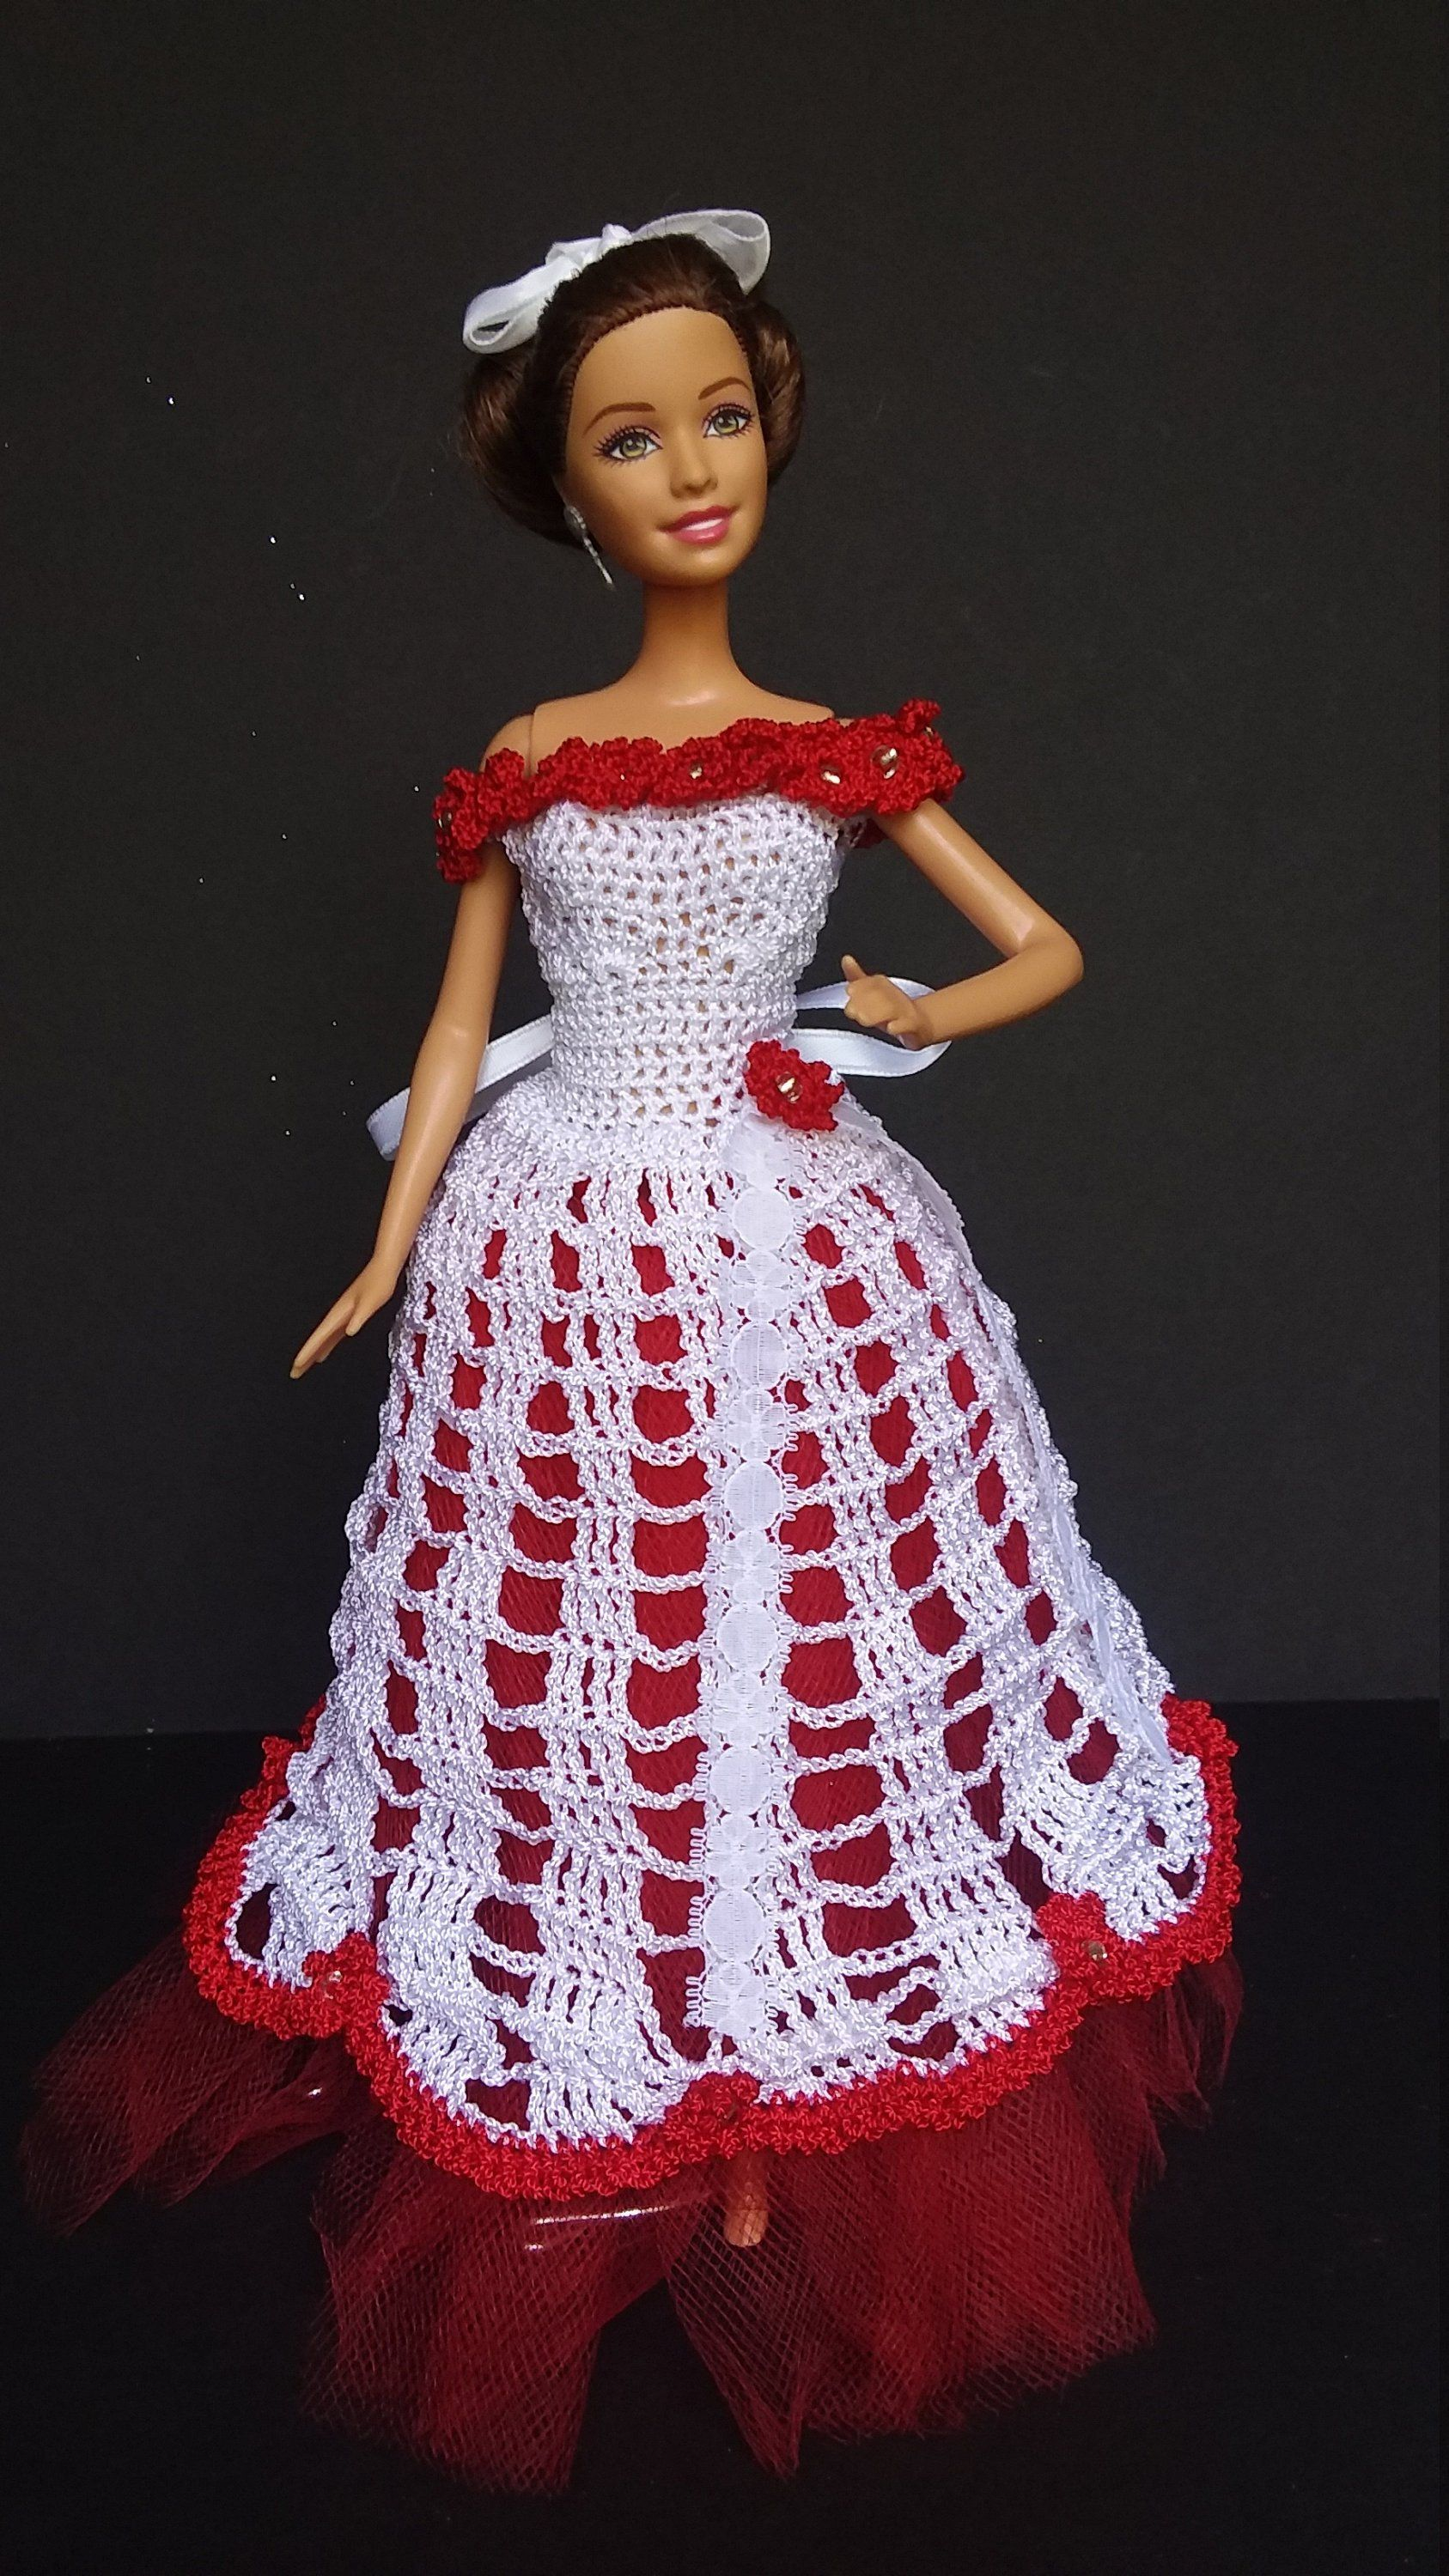 Rose Crochet Barbie Dress #dollvictoriandressstyles